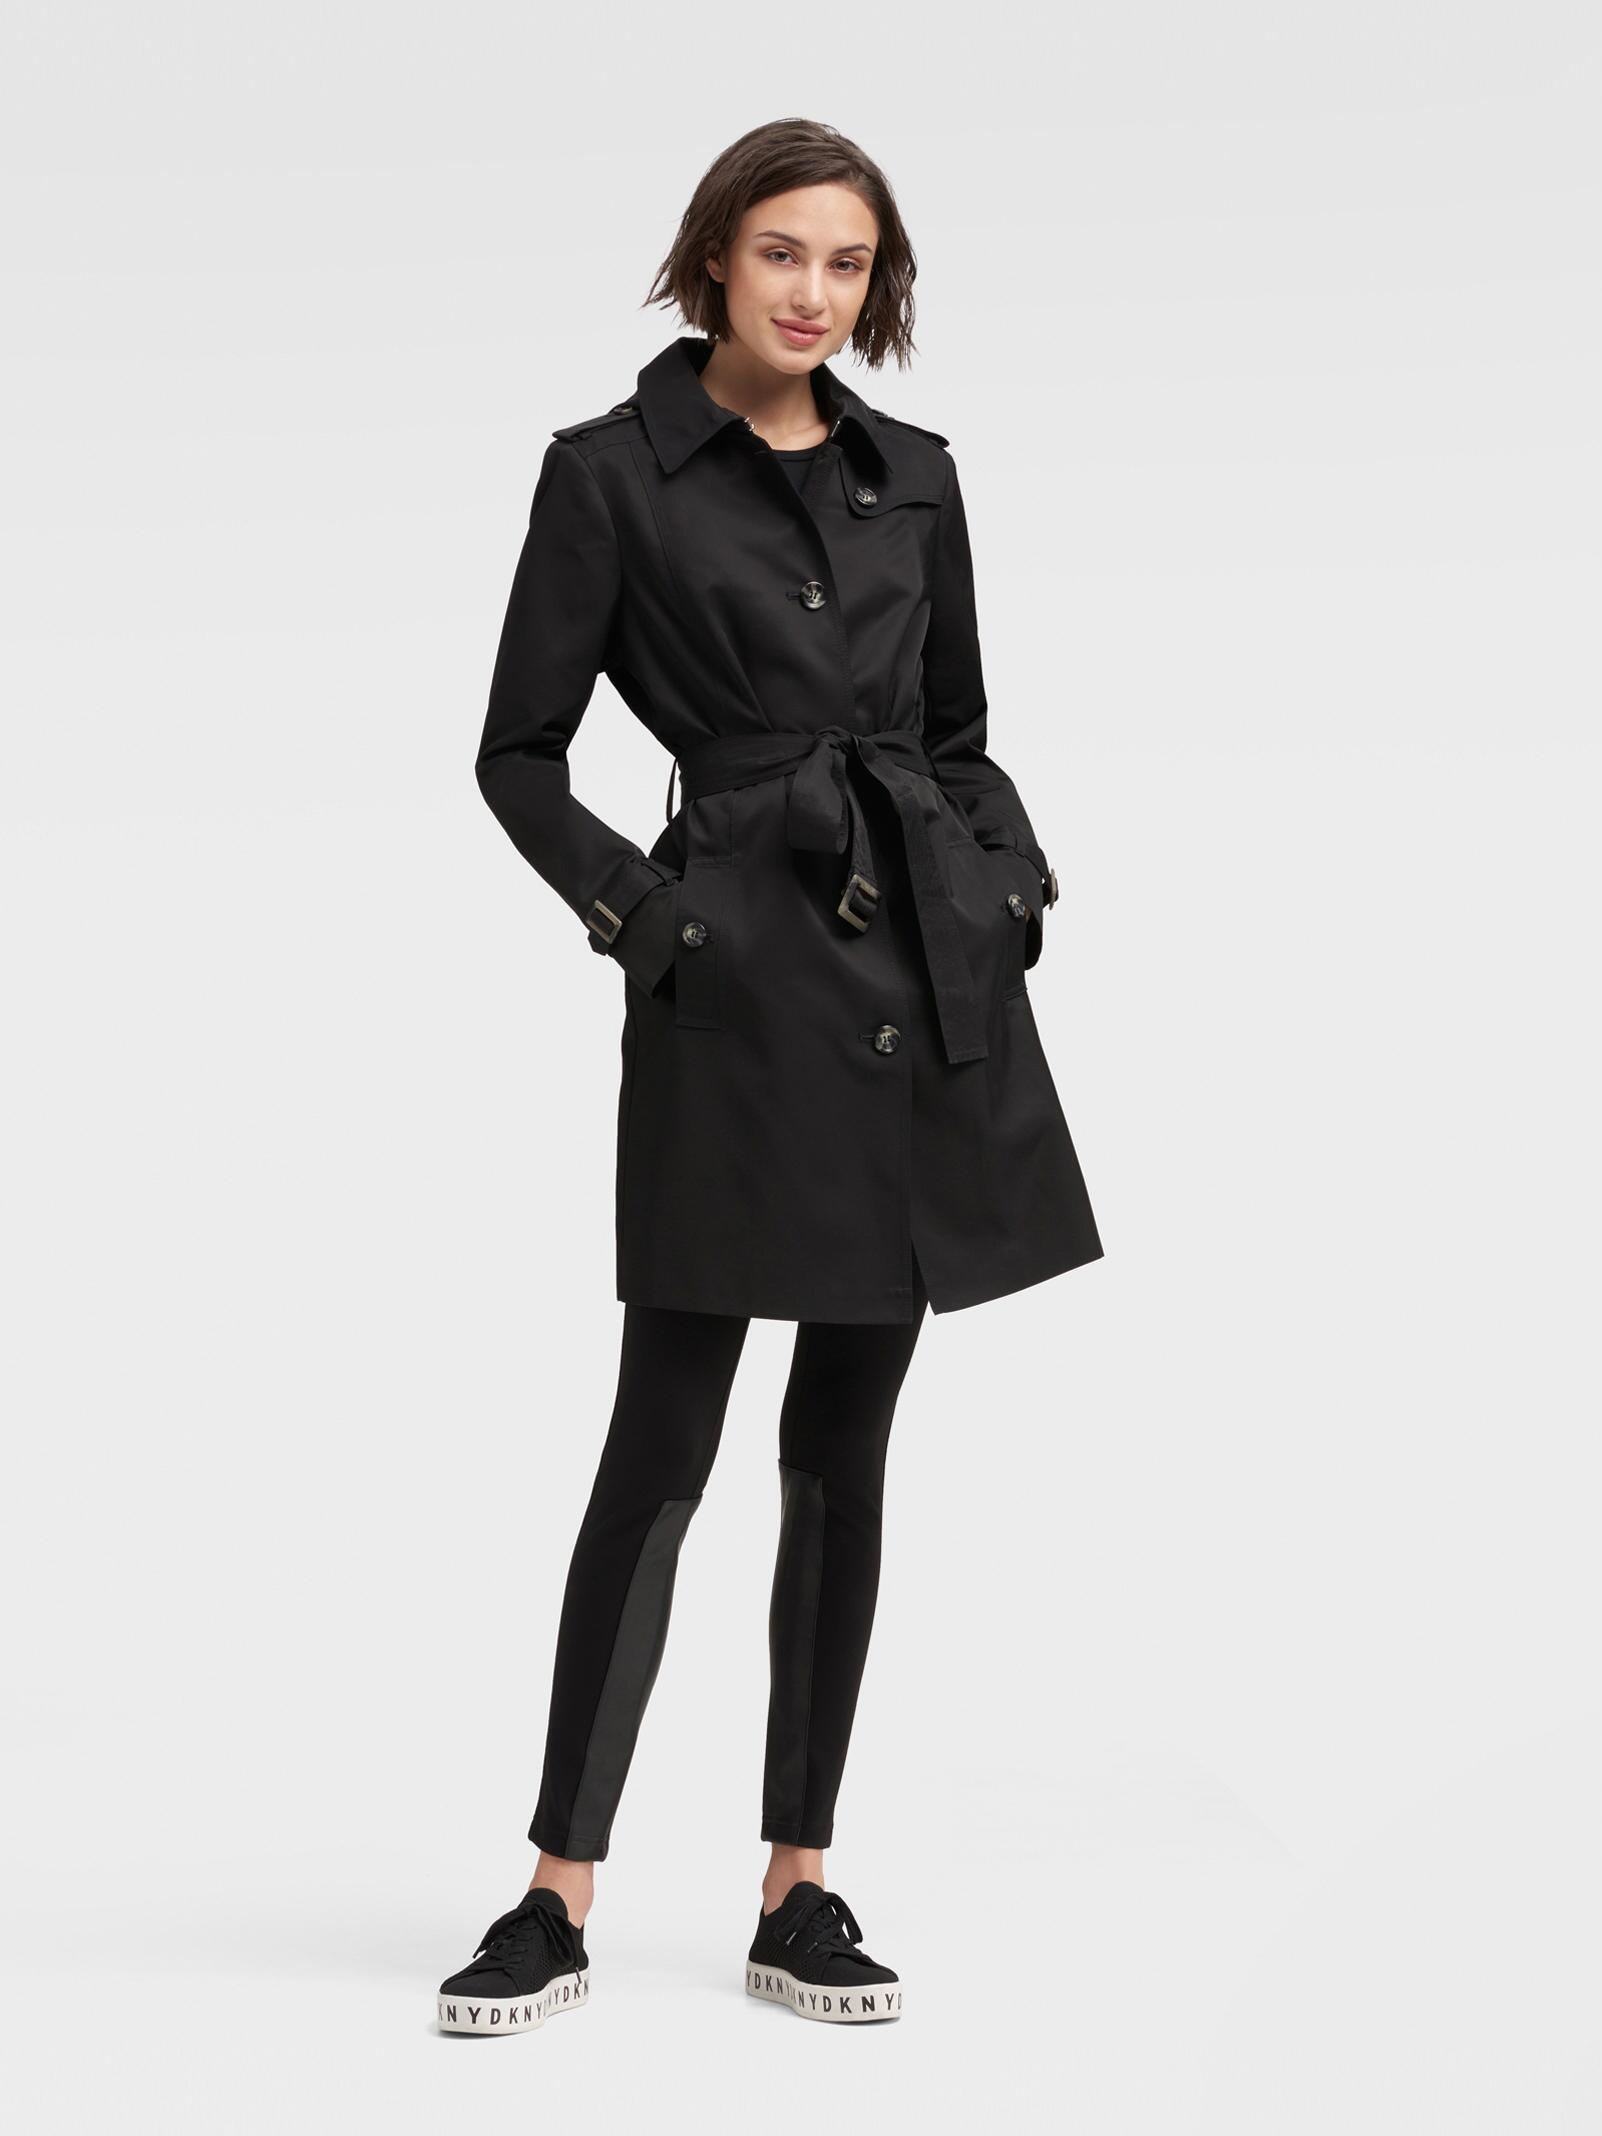 huge sale free shipping special buy DKNY Black Trench Coat